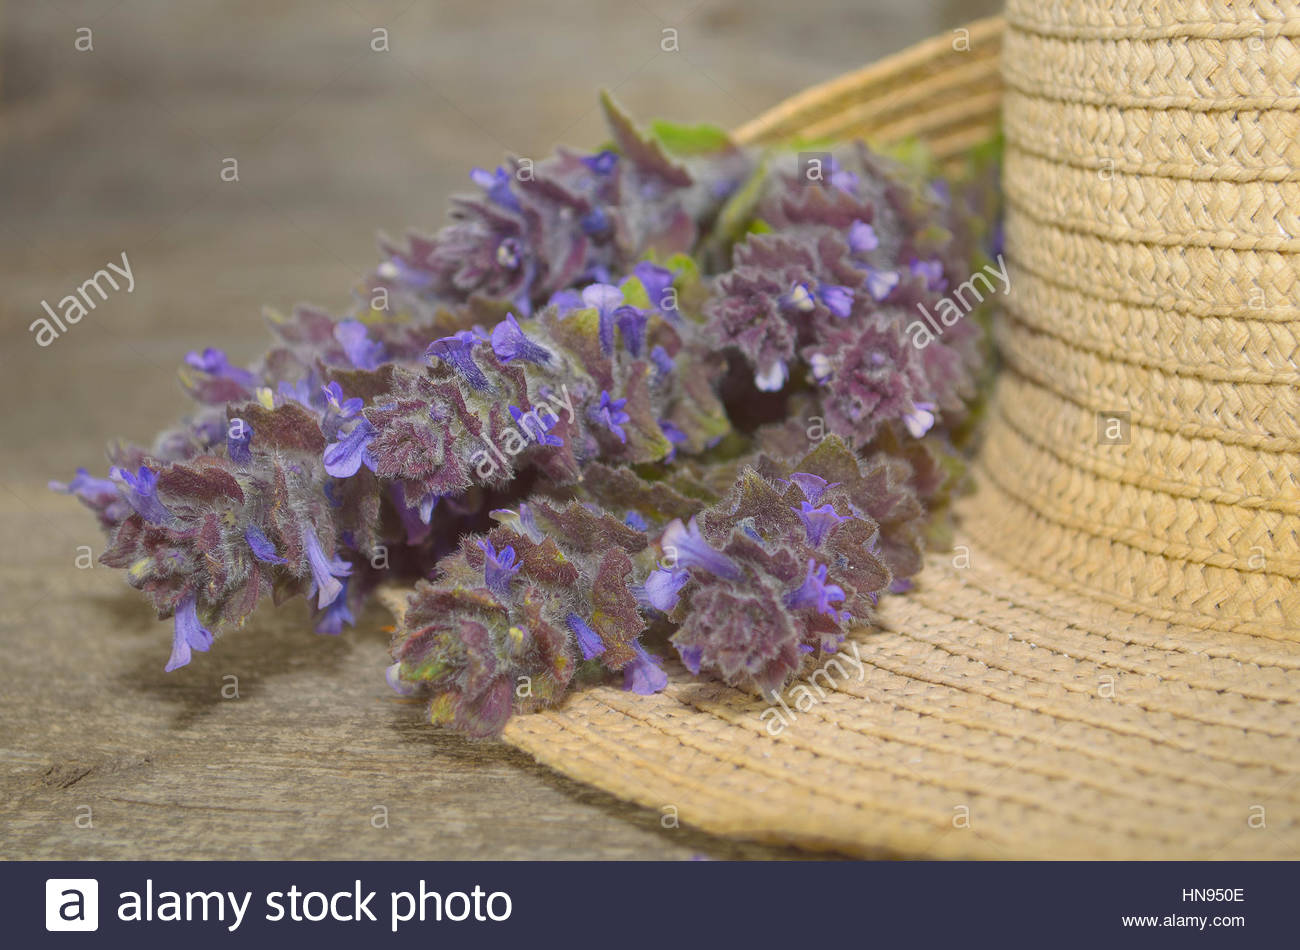 Spring flowers on a straw hat on a wooden background - Stock Image